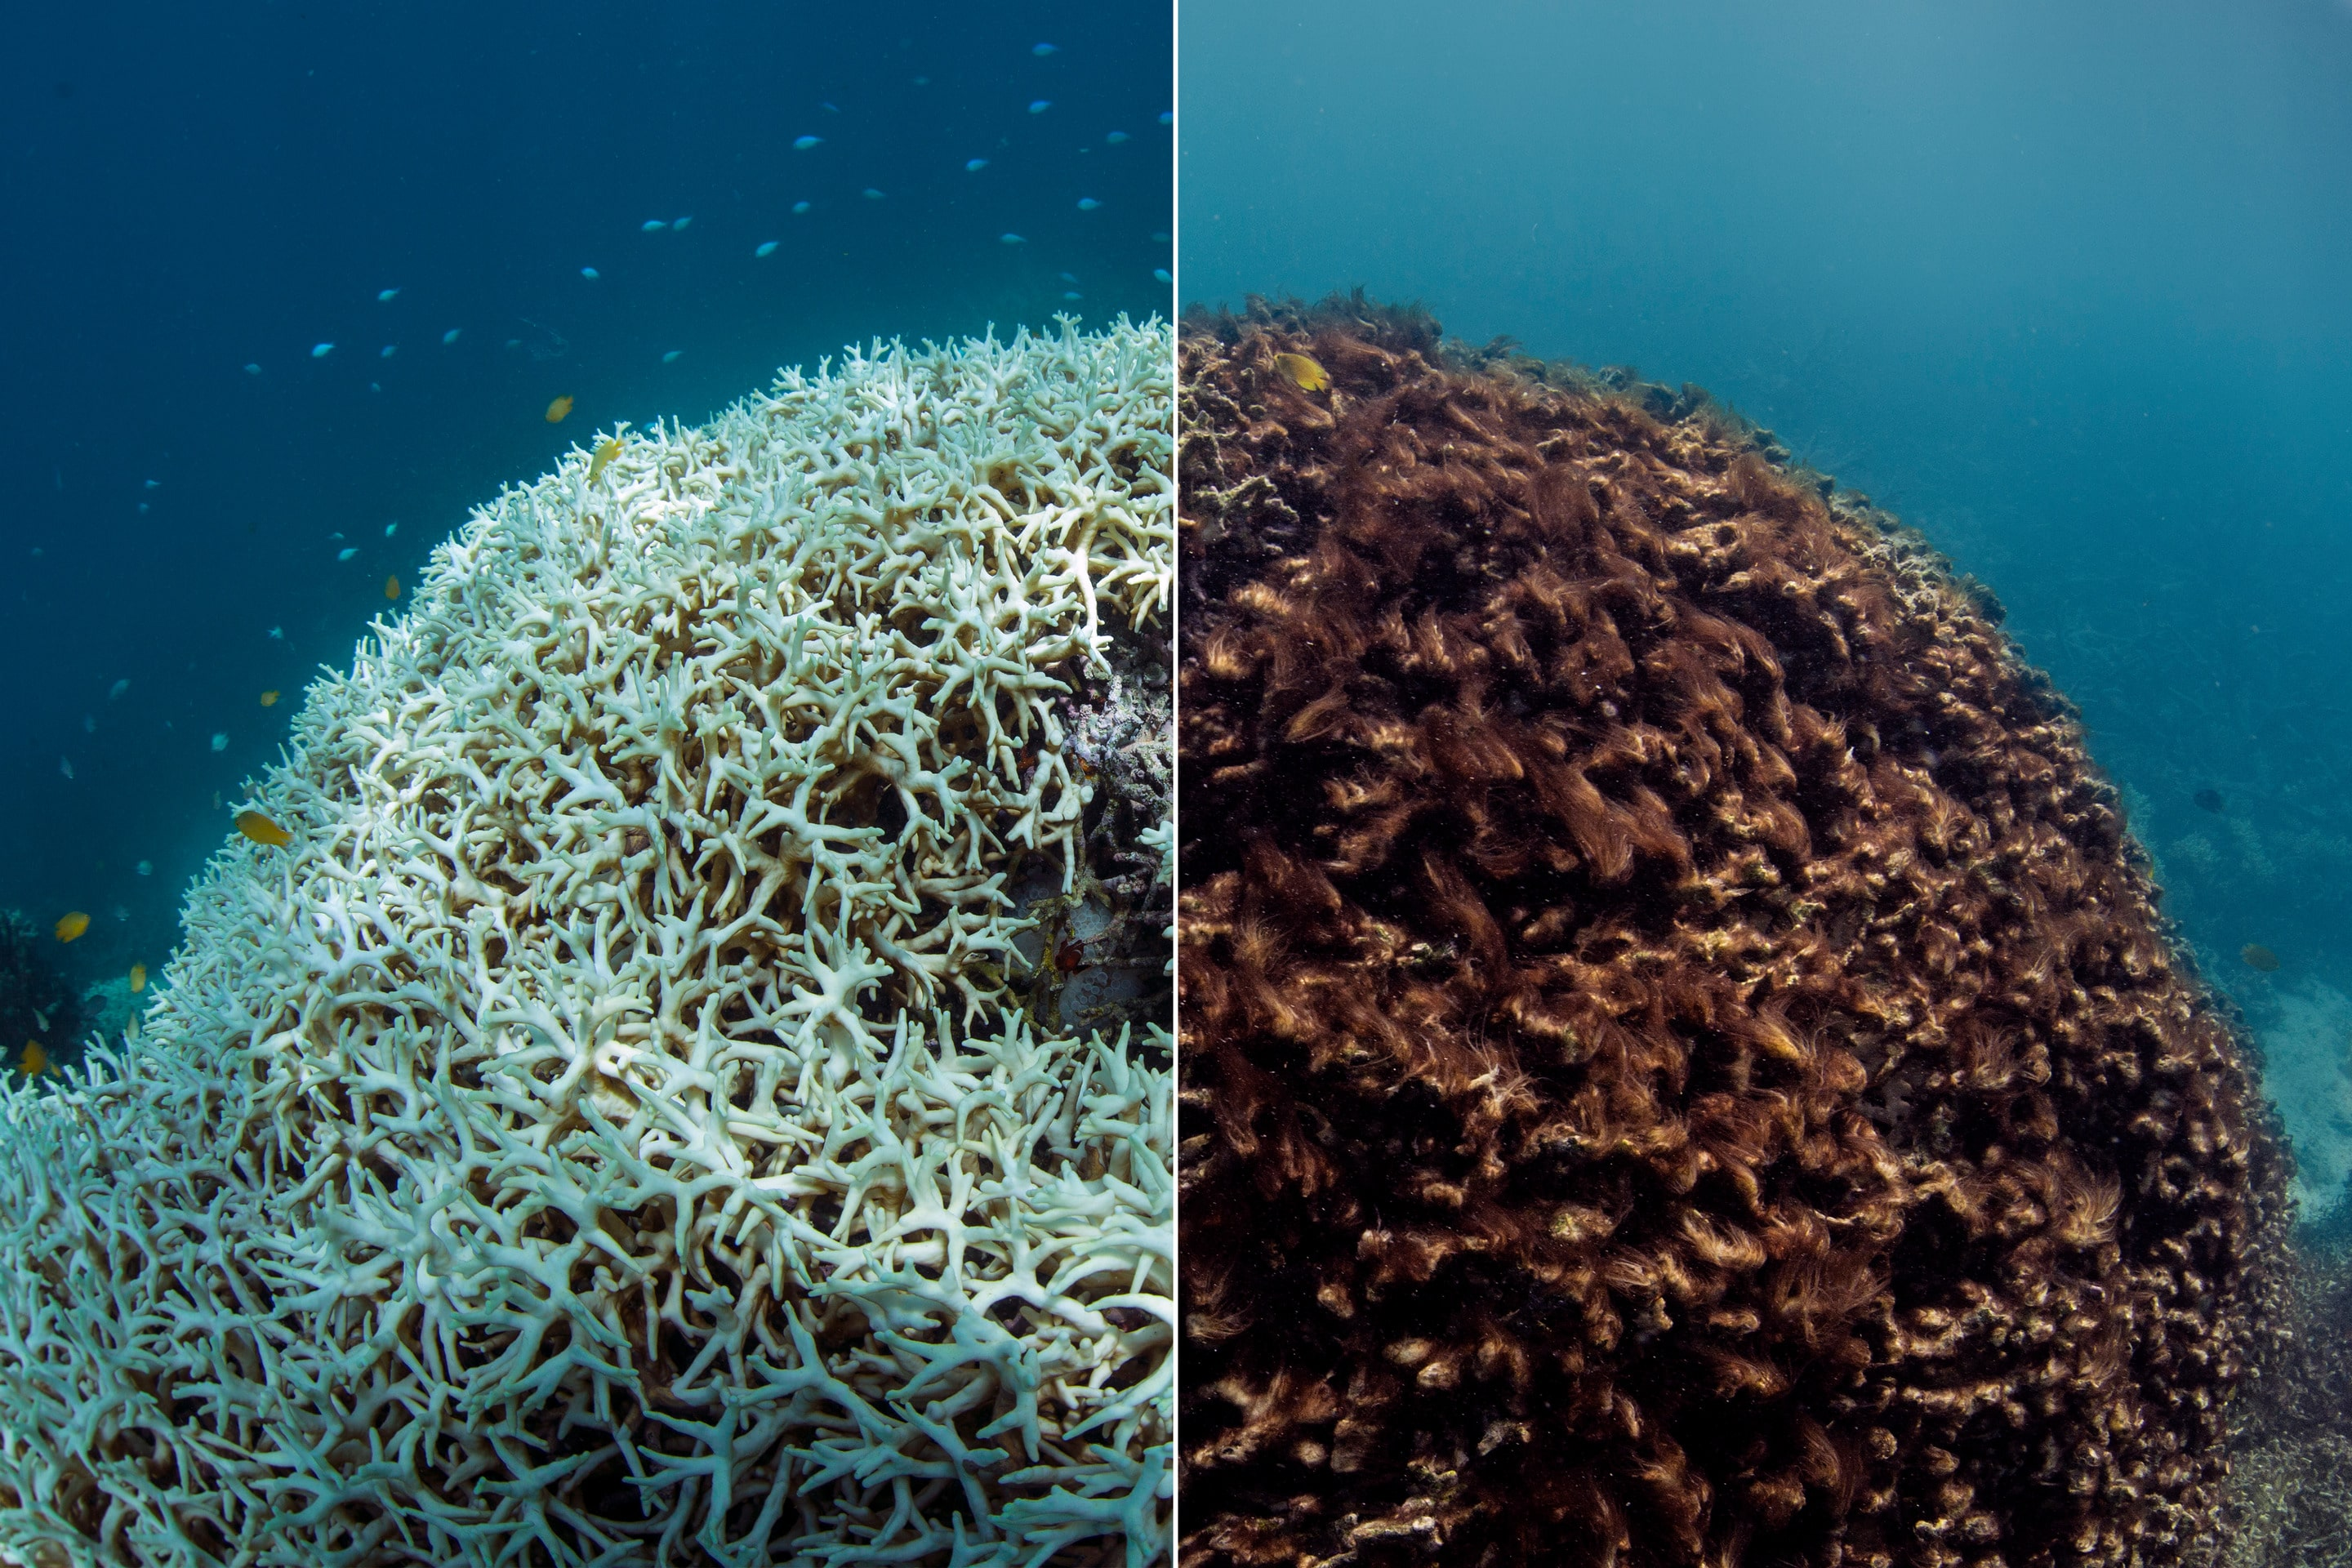 Before and After Coral Bleaching Photo by credit The Ocean Agency - XL Catlin Seaview Survey - Richard Vevers _ Christophe Bailhache.